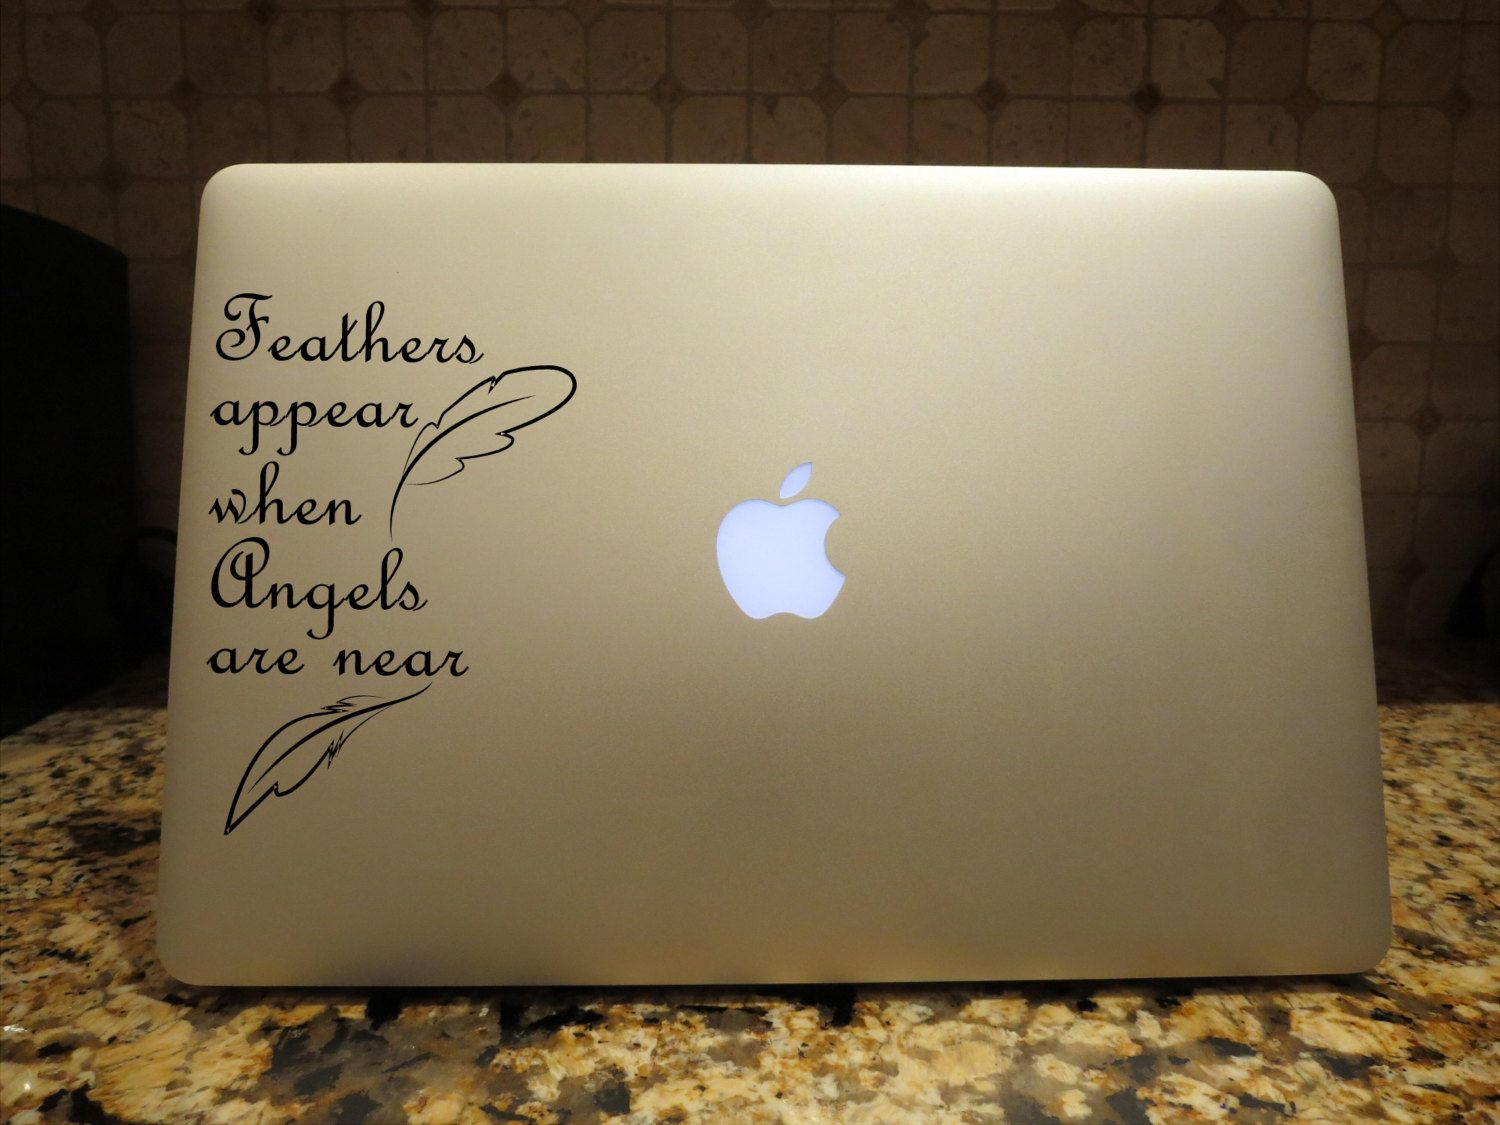 Feathers Appear when Angels are near Decal Custom Vinyl